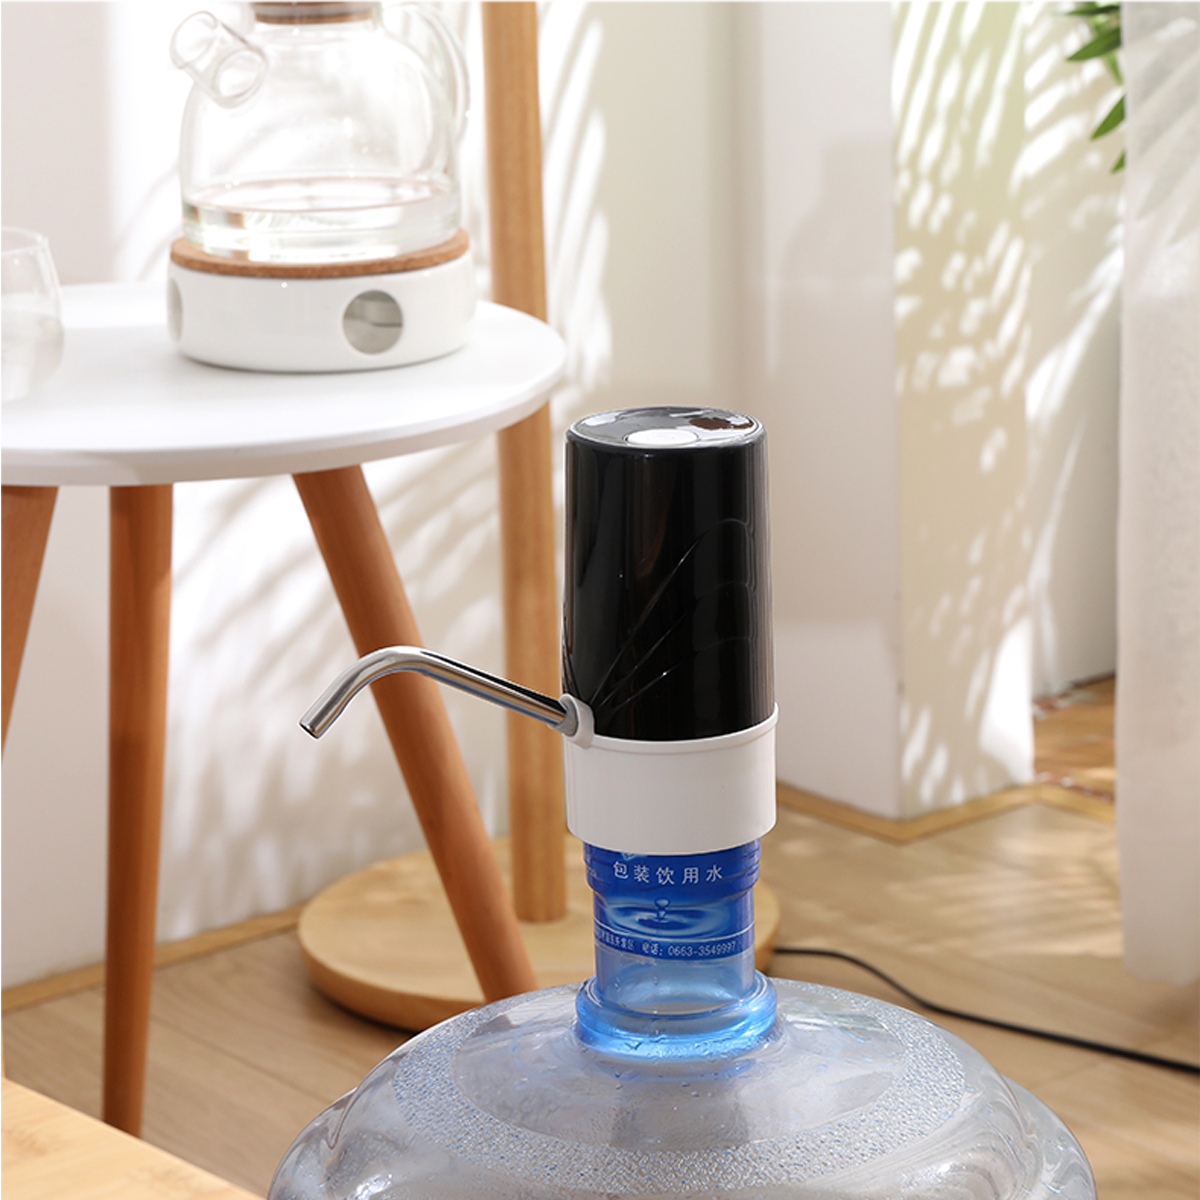 USB Automatic Water Pump Dispenser Rechargeable 5 Gallon Universal Electric Switch Water Bottle Pumping Device